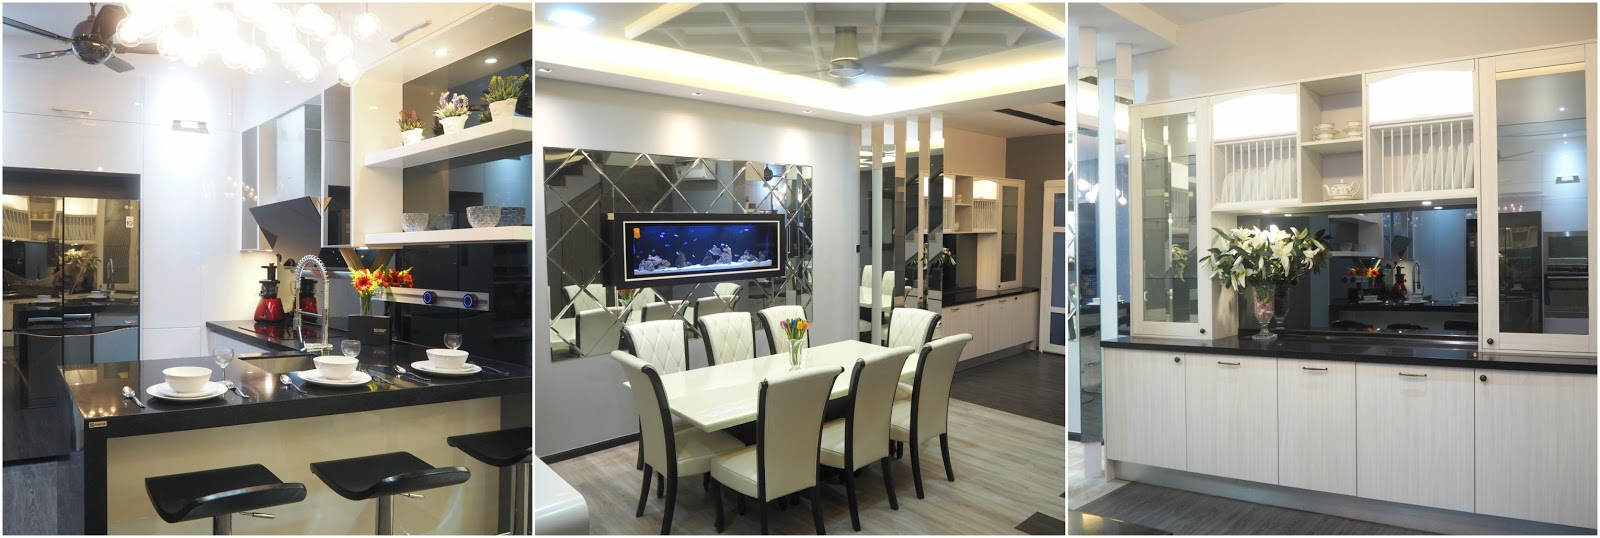 Meridian Interior Design And Kitchen Design In Kuala Lumpur Selangor Malaysia Comments